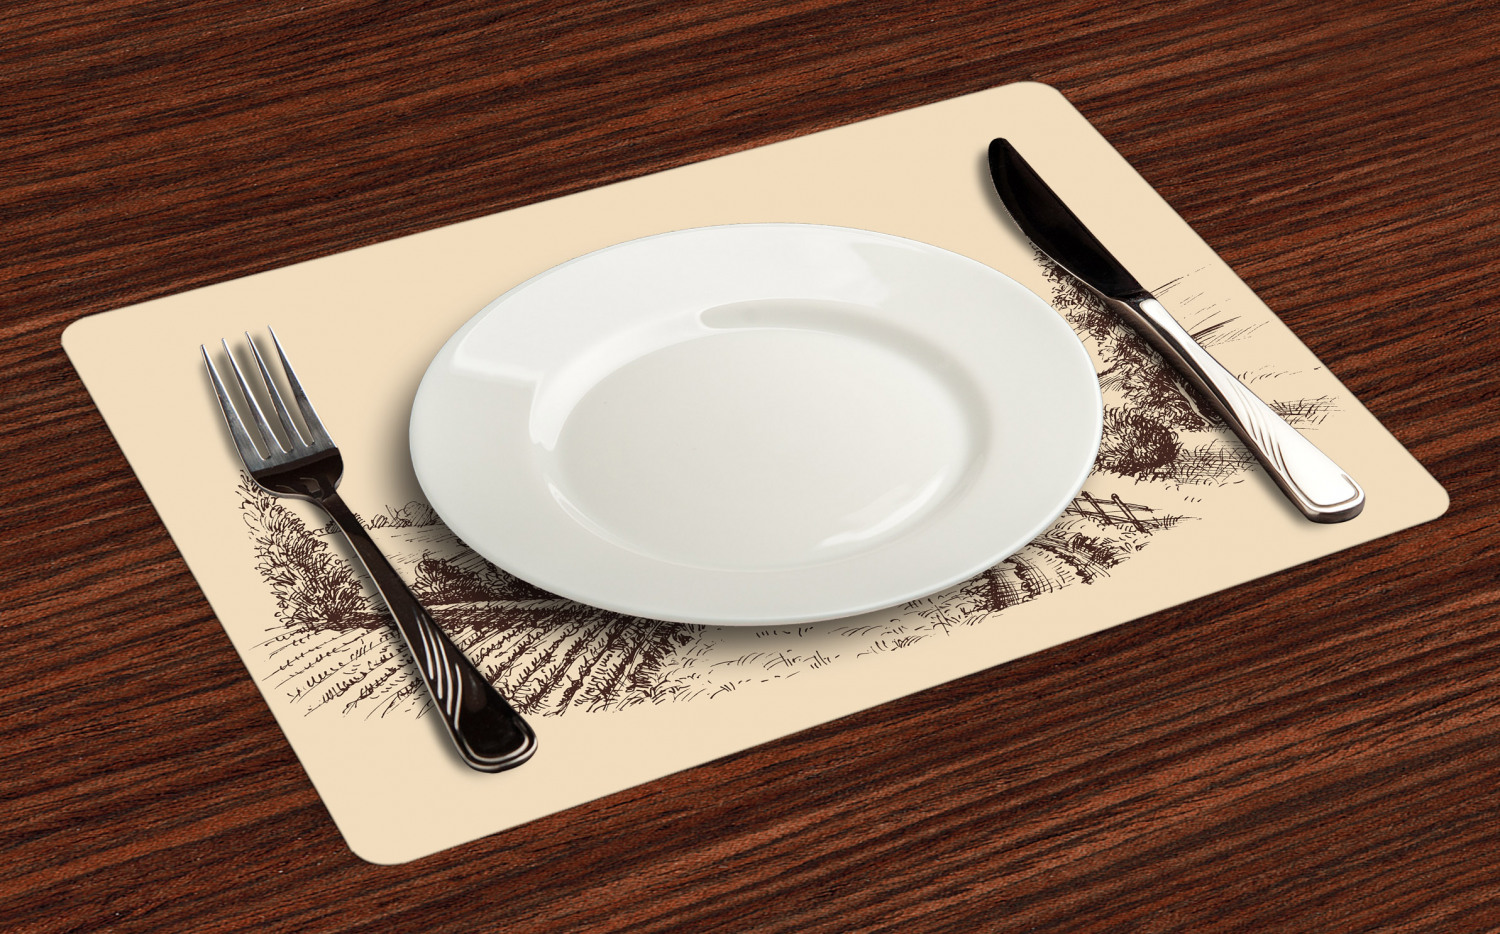 Ambesonne-Fabric-Place-Mats-Set-of-4-Placemats-for-Dining-Room-and-Kitchen-Table thumbnail 153